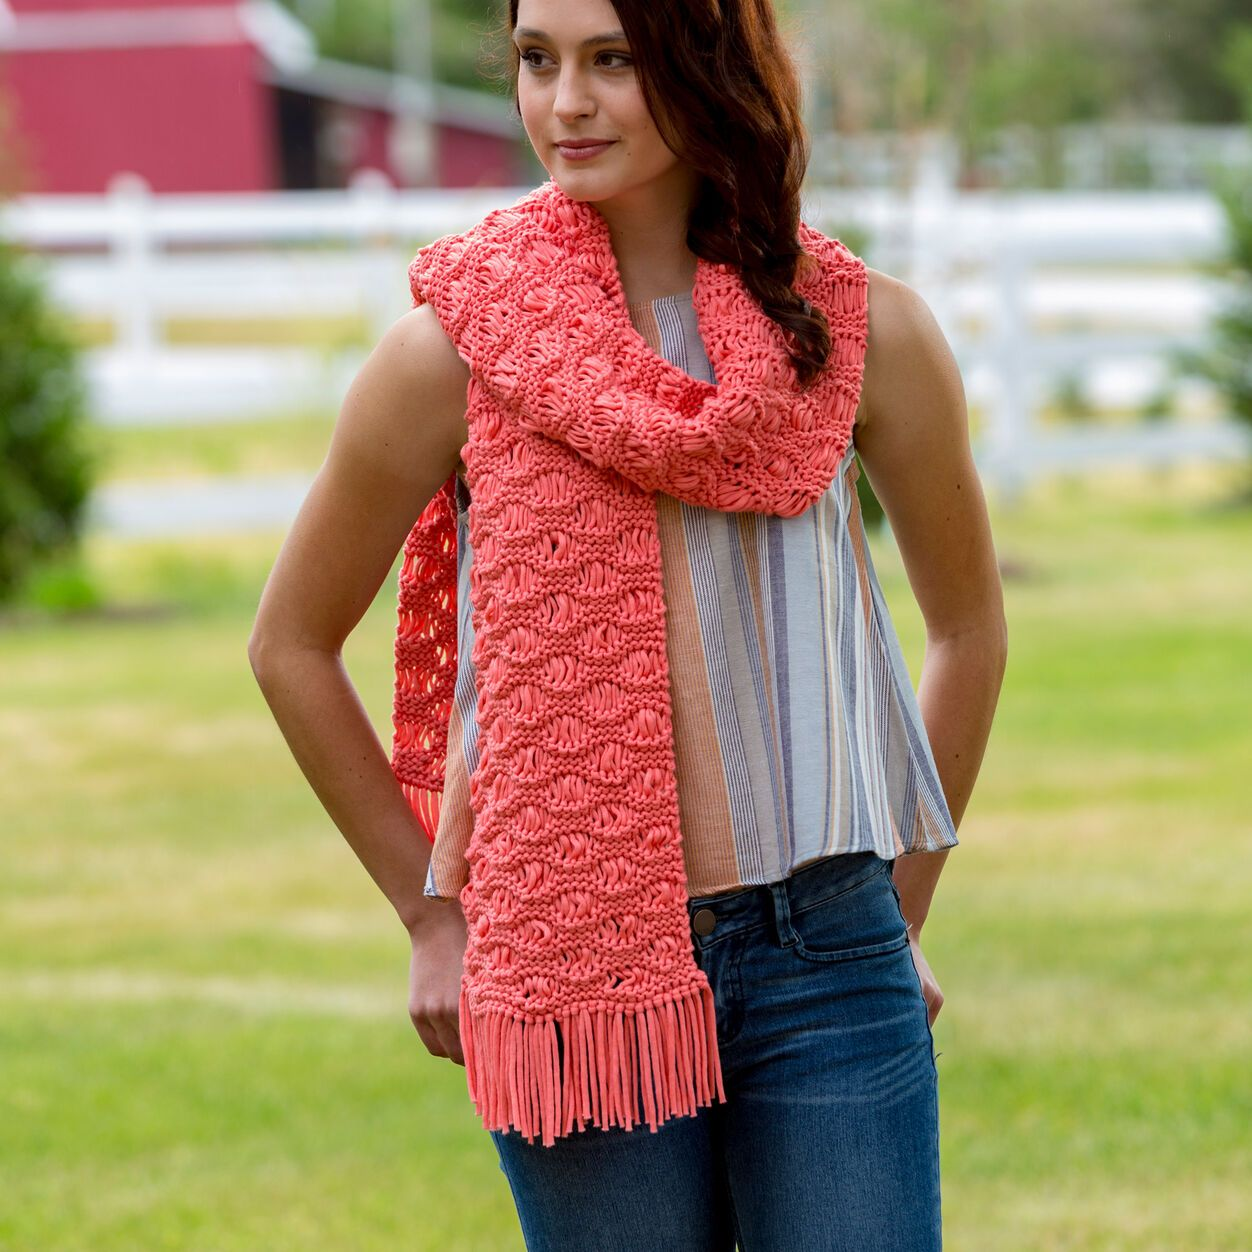 Red Heart Wavy Drop-Stitch Scarf in color in 2020 | Mens ...